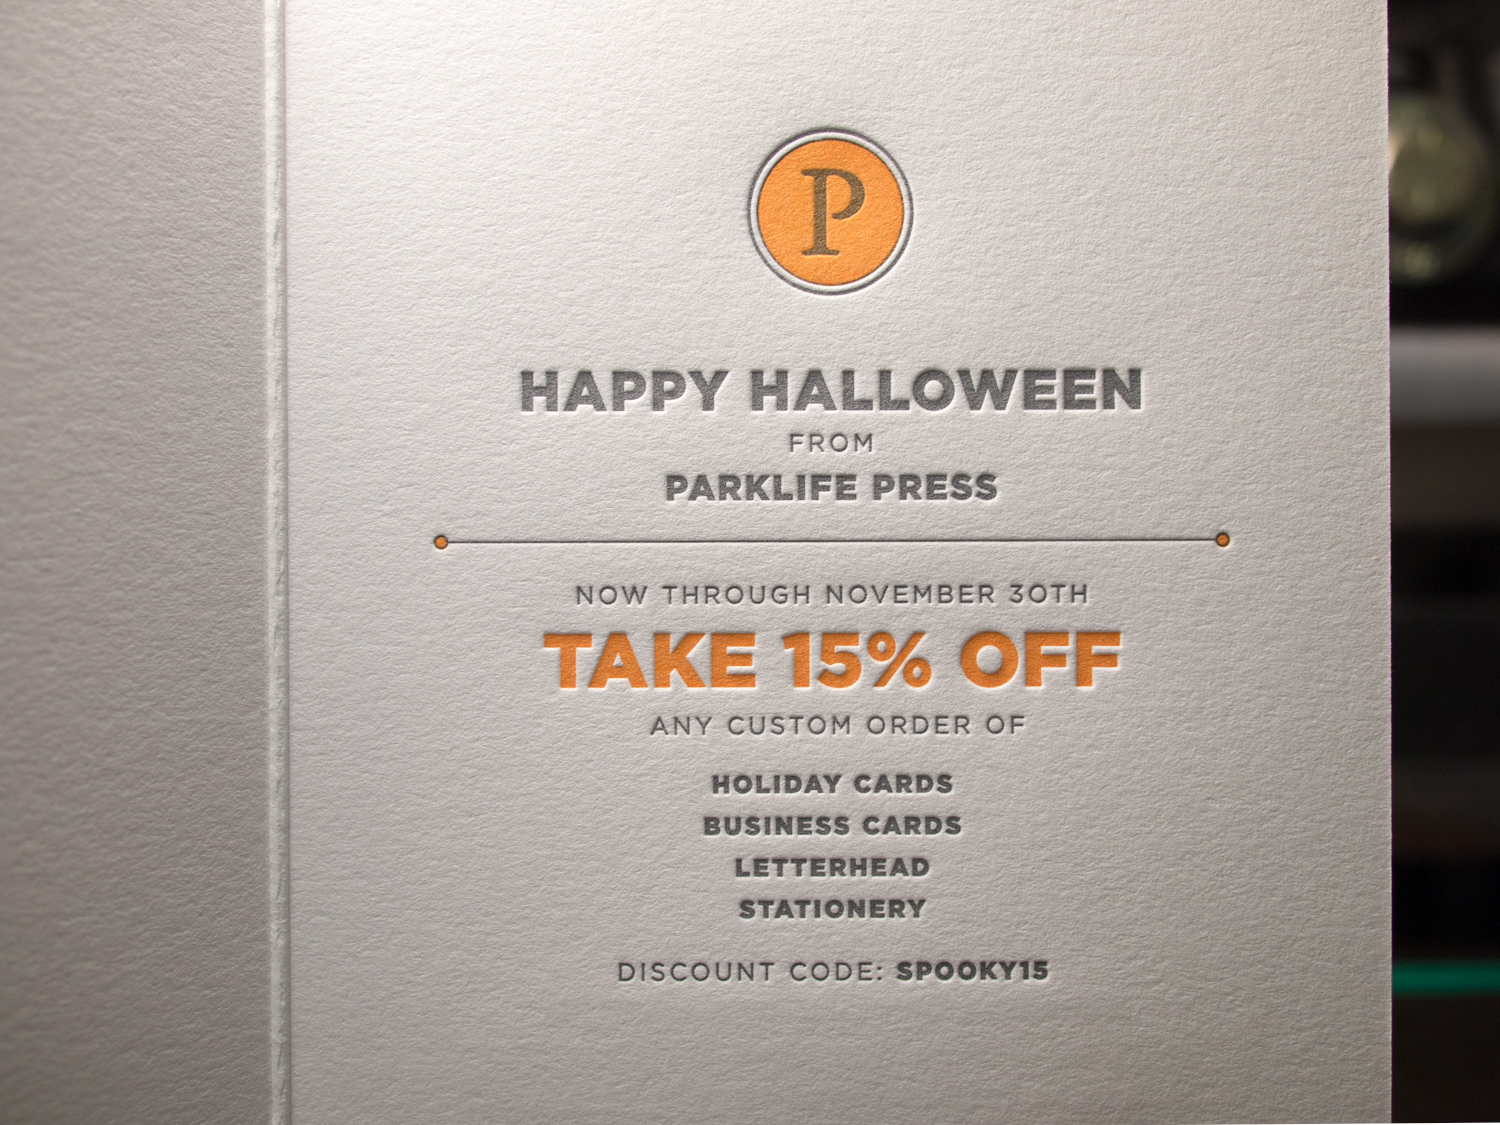 Our Letterpress Halloween Card = 15% Off Business Orders